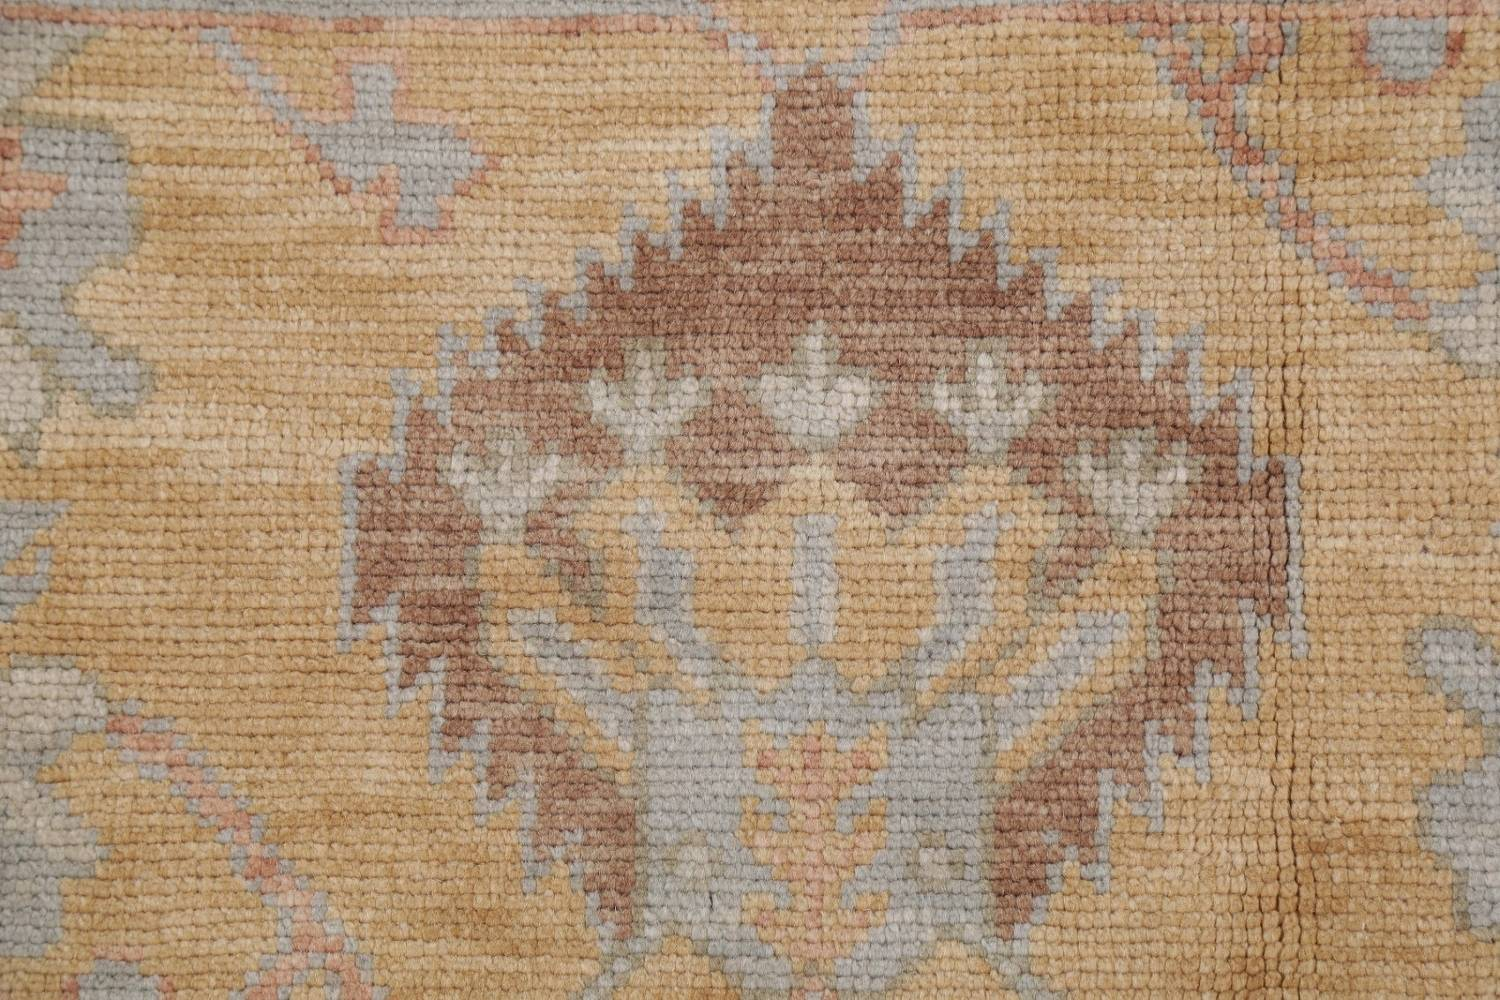 Vegetable Dye Muted Green Oushak Turkish Hand-Knotted Area Rug 9x12 image 7